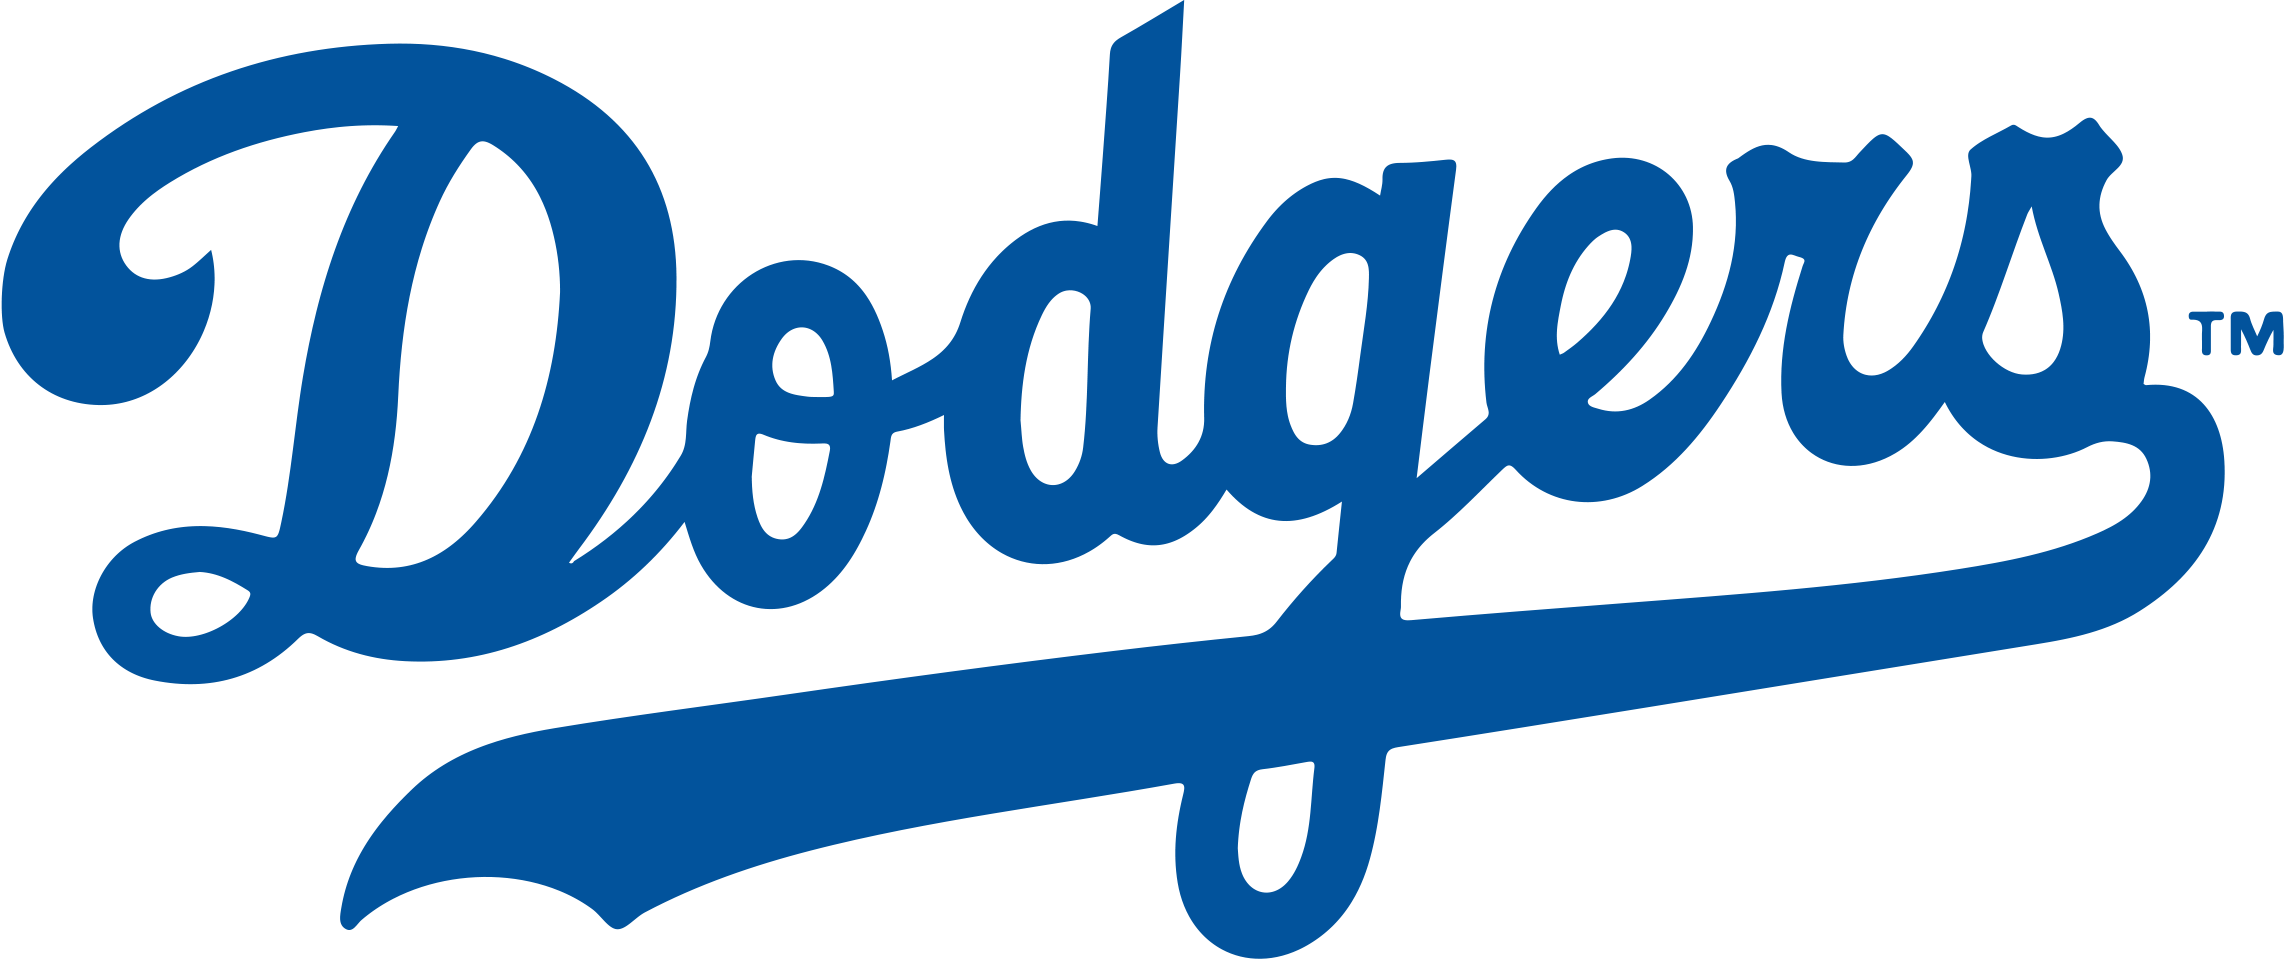 Jersey Clipart Dodger Jersey Dodger Transparent Free For